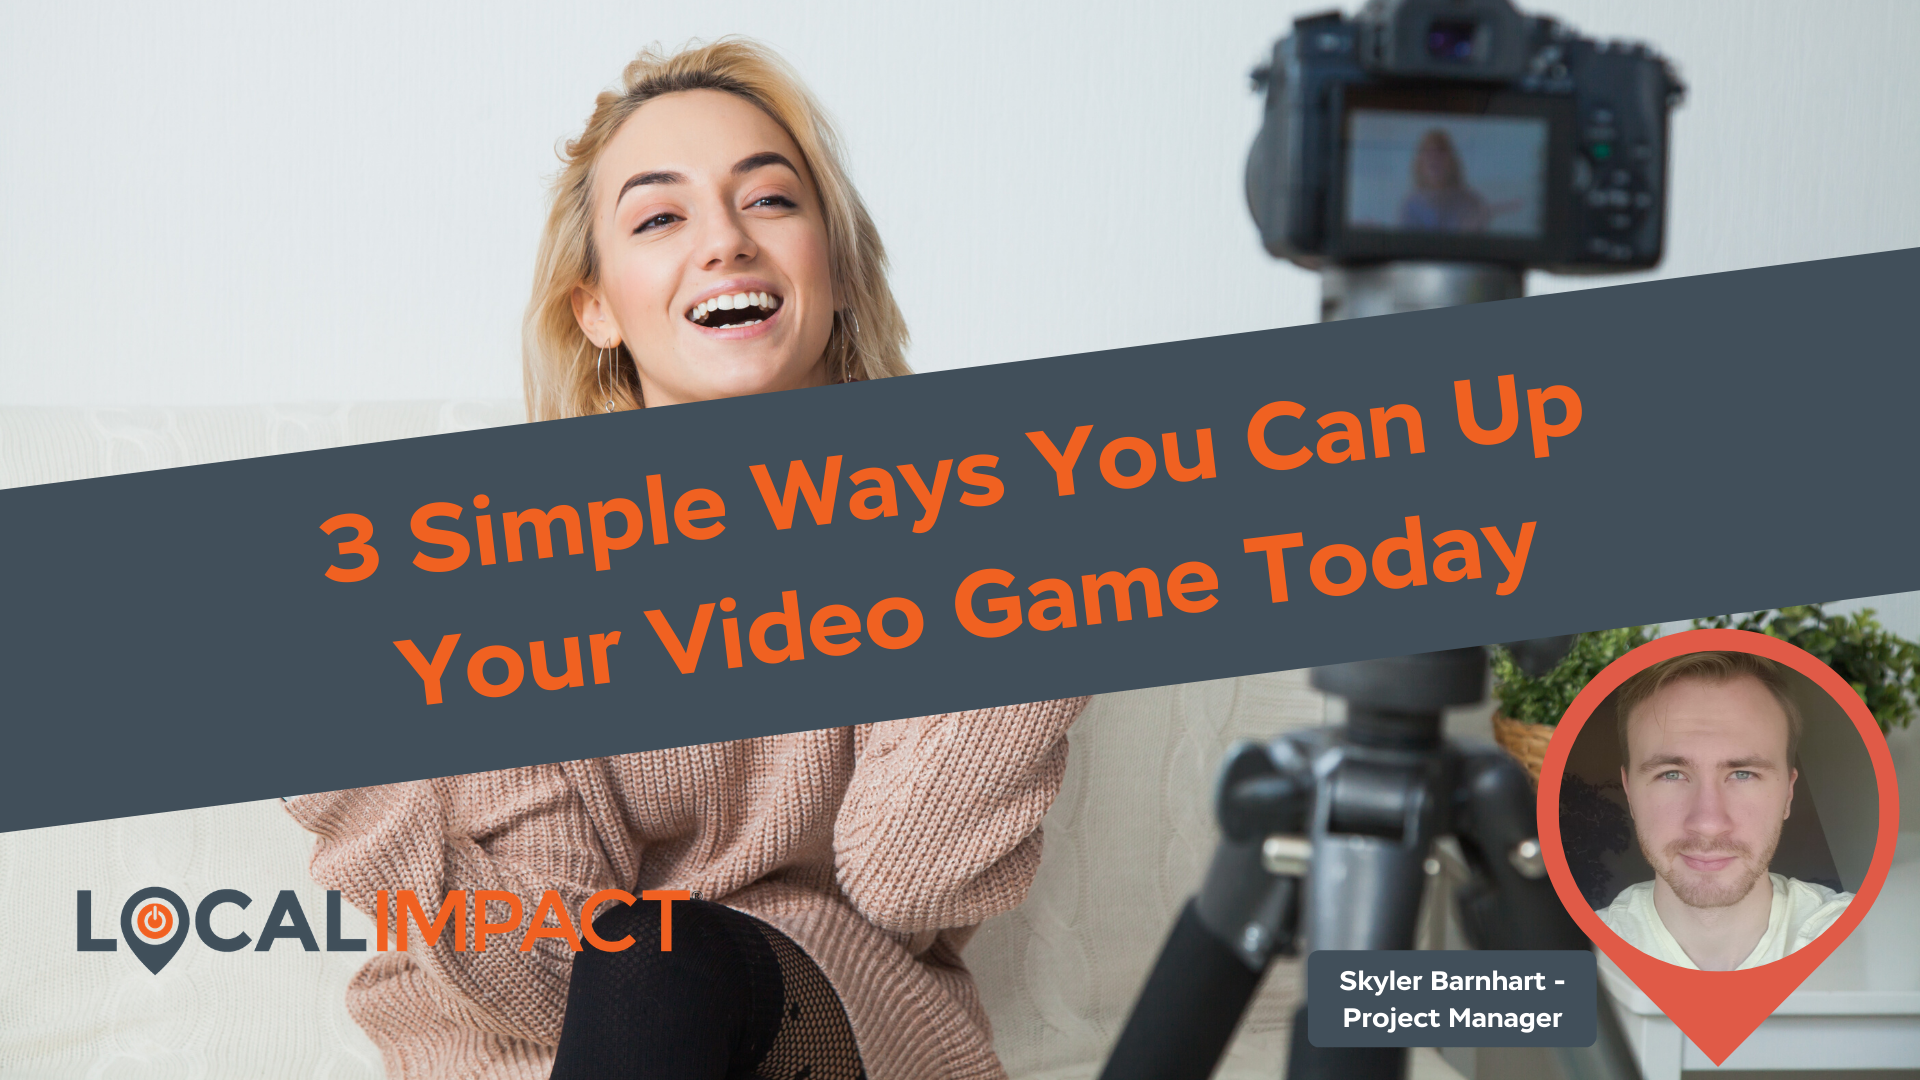 3 Simple Ways You Can Up Your Video Game Today - Local Impact Blog